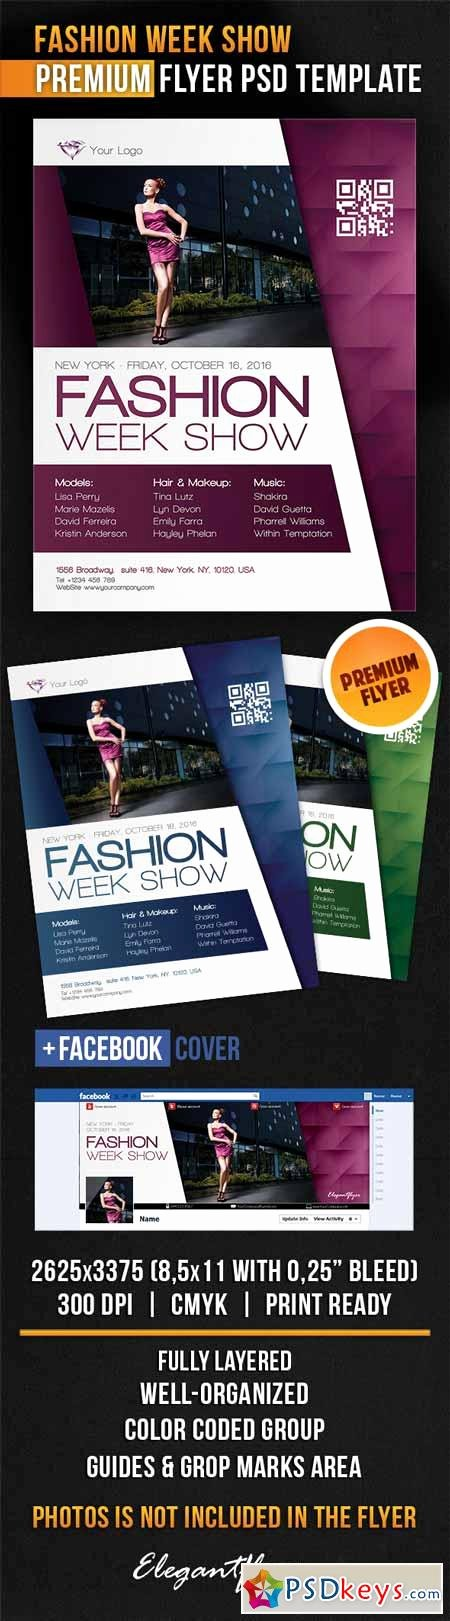 Fashion Show Program Templates Lovely Fashion Week Show – Flyer Psd Template Cover